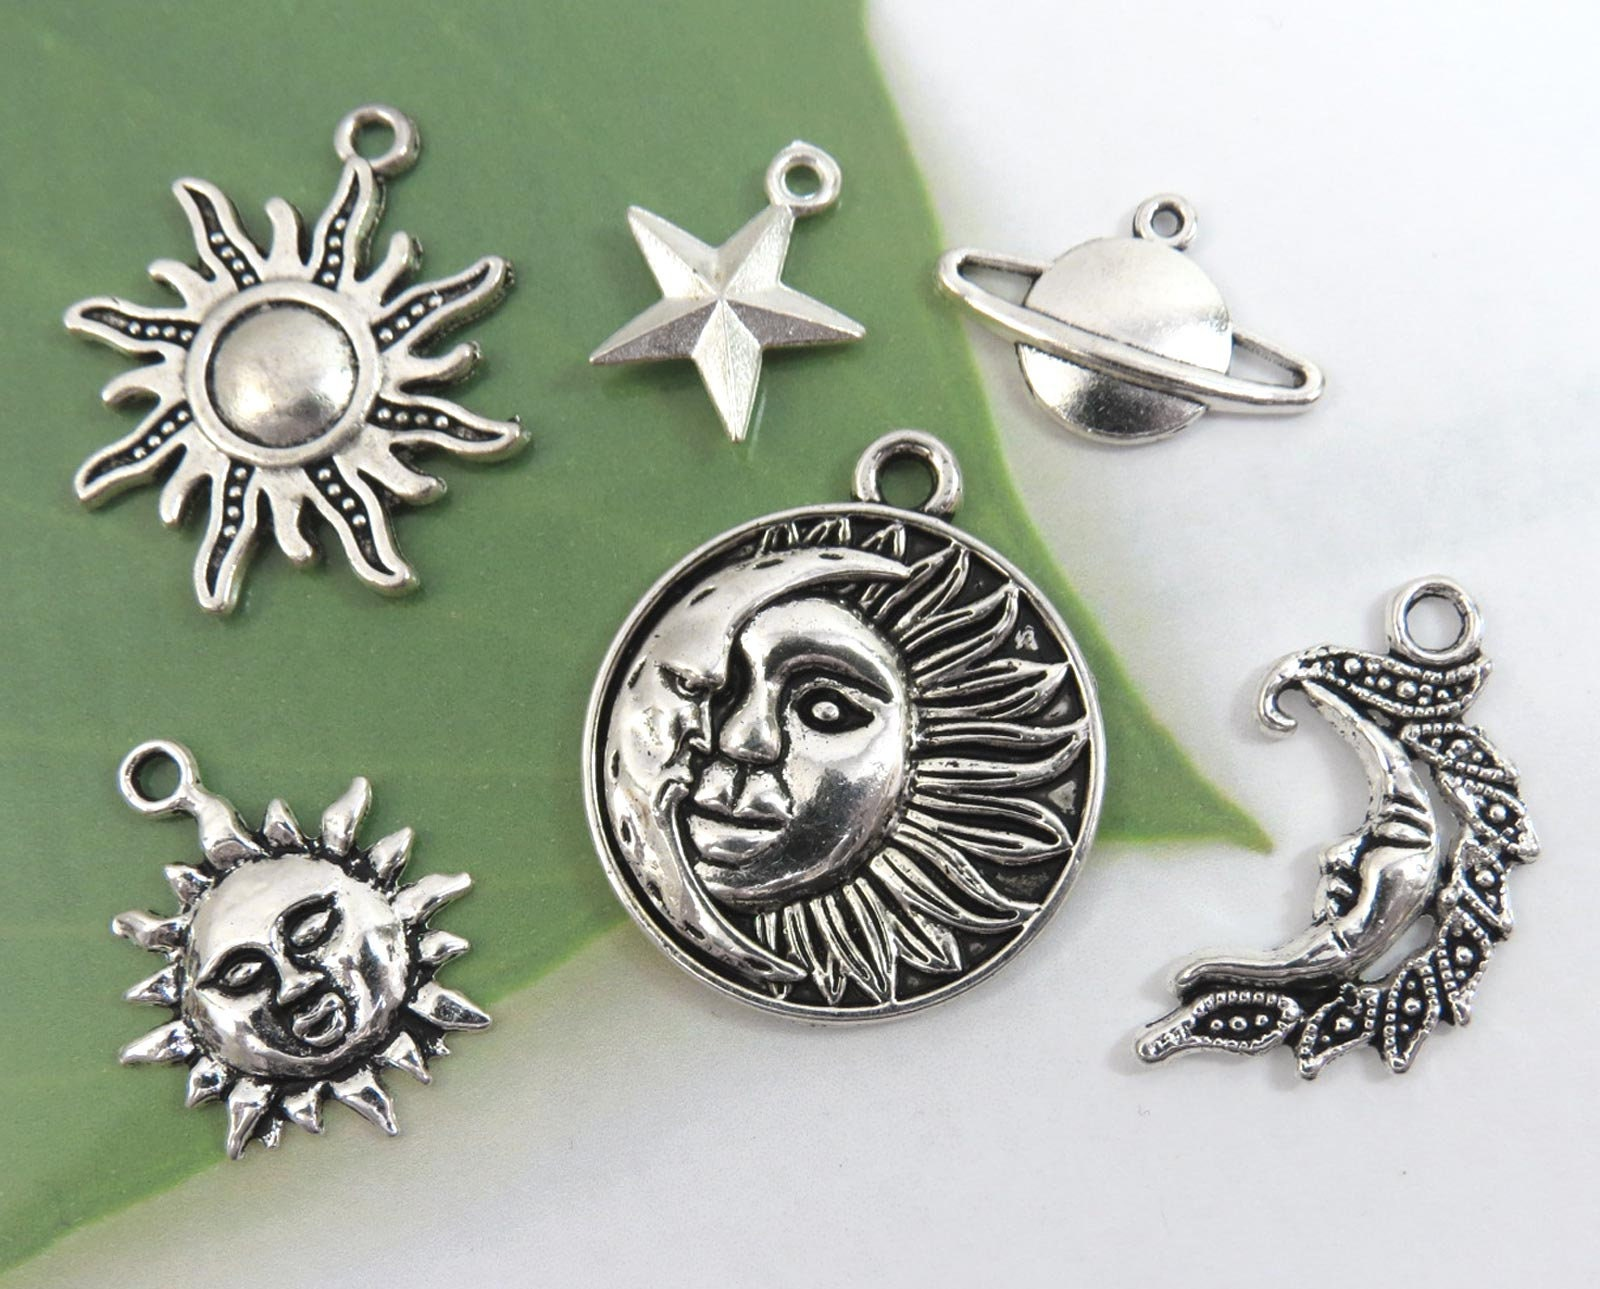 You Rock And Roll Charm//Pendant Tibetan Antique Silver 29mm  4 Charms Accessory